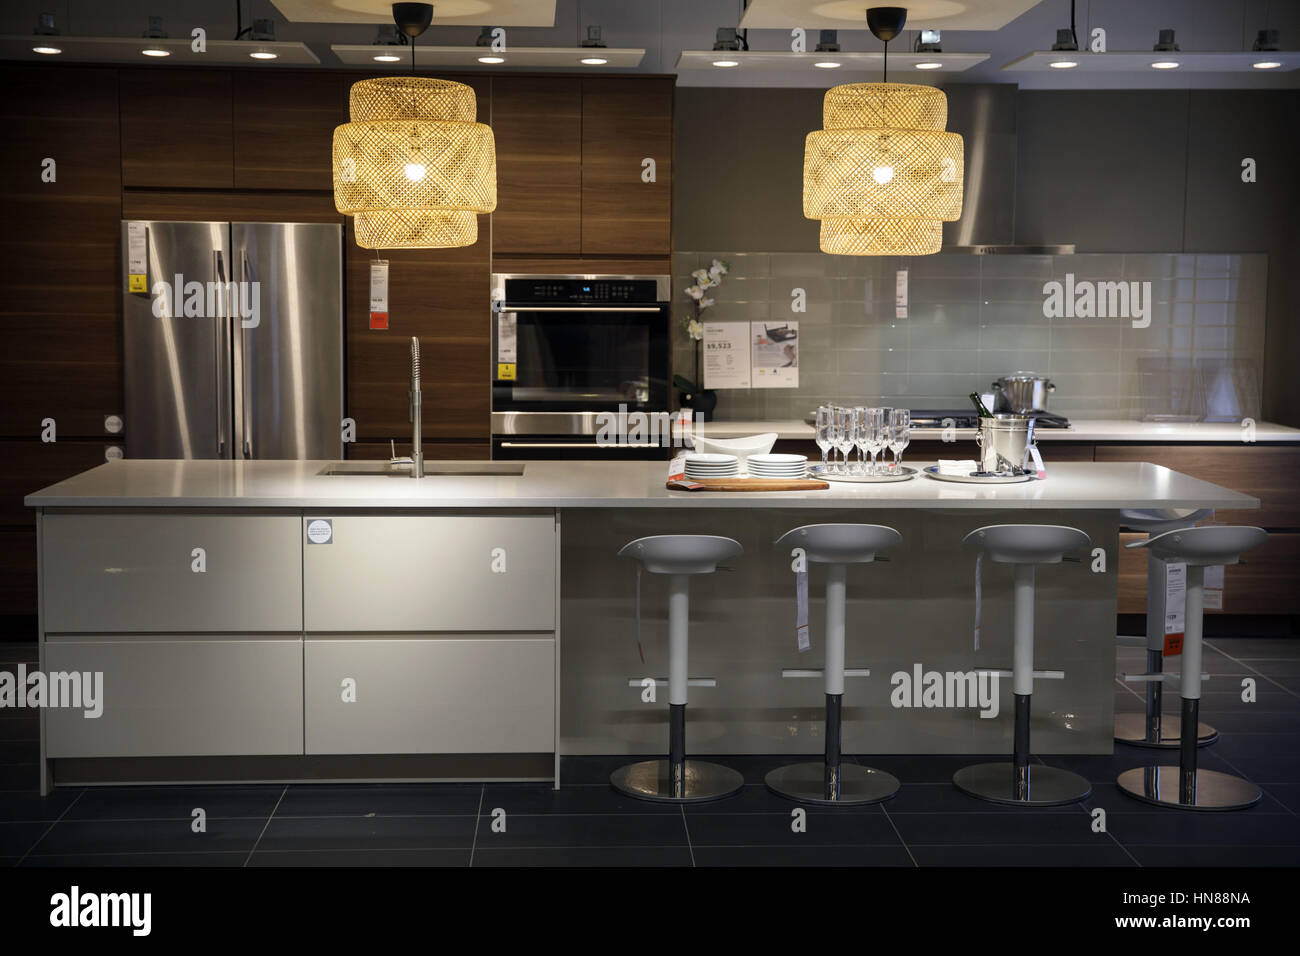 Burbank, CA, USA. 1st Feb, 2017. Lamps Hang In A Kitchen Display Space  During A Preview Of The New IKEA Burbank Home Furnishings Store On  Wednesday, ...